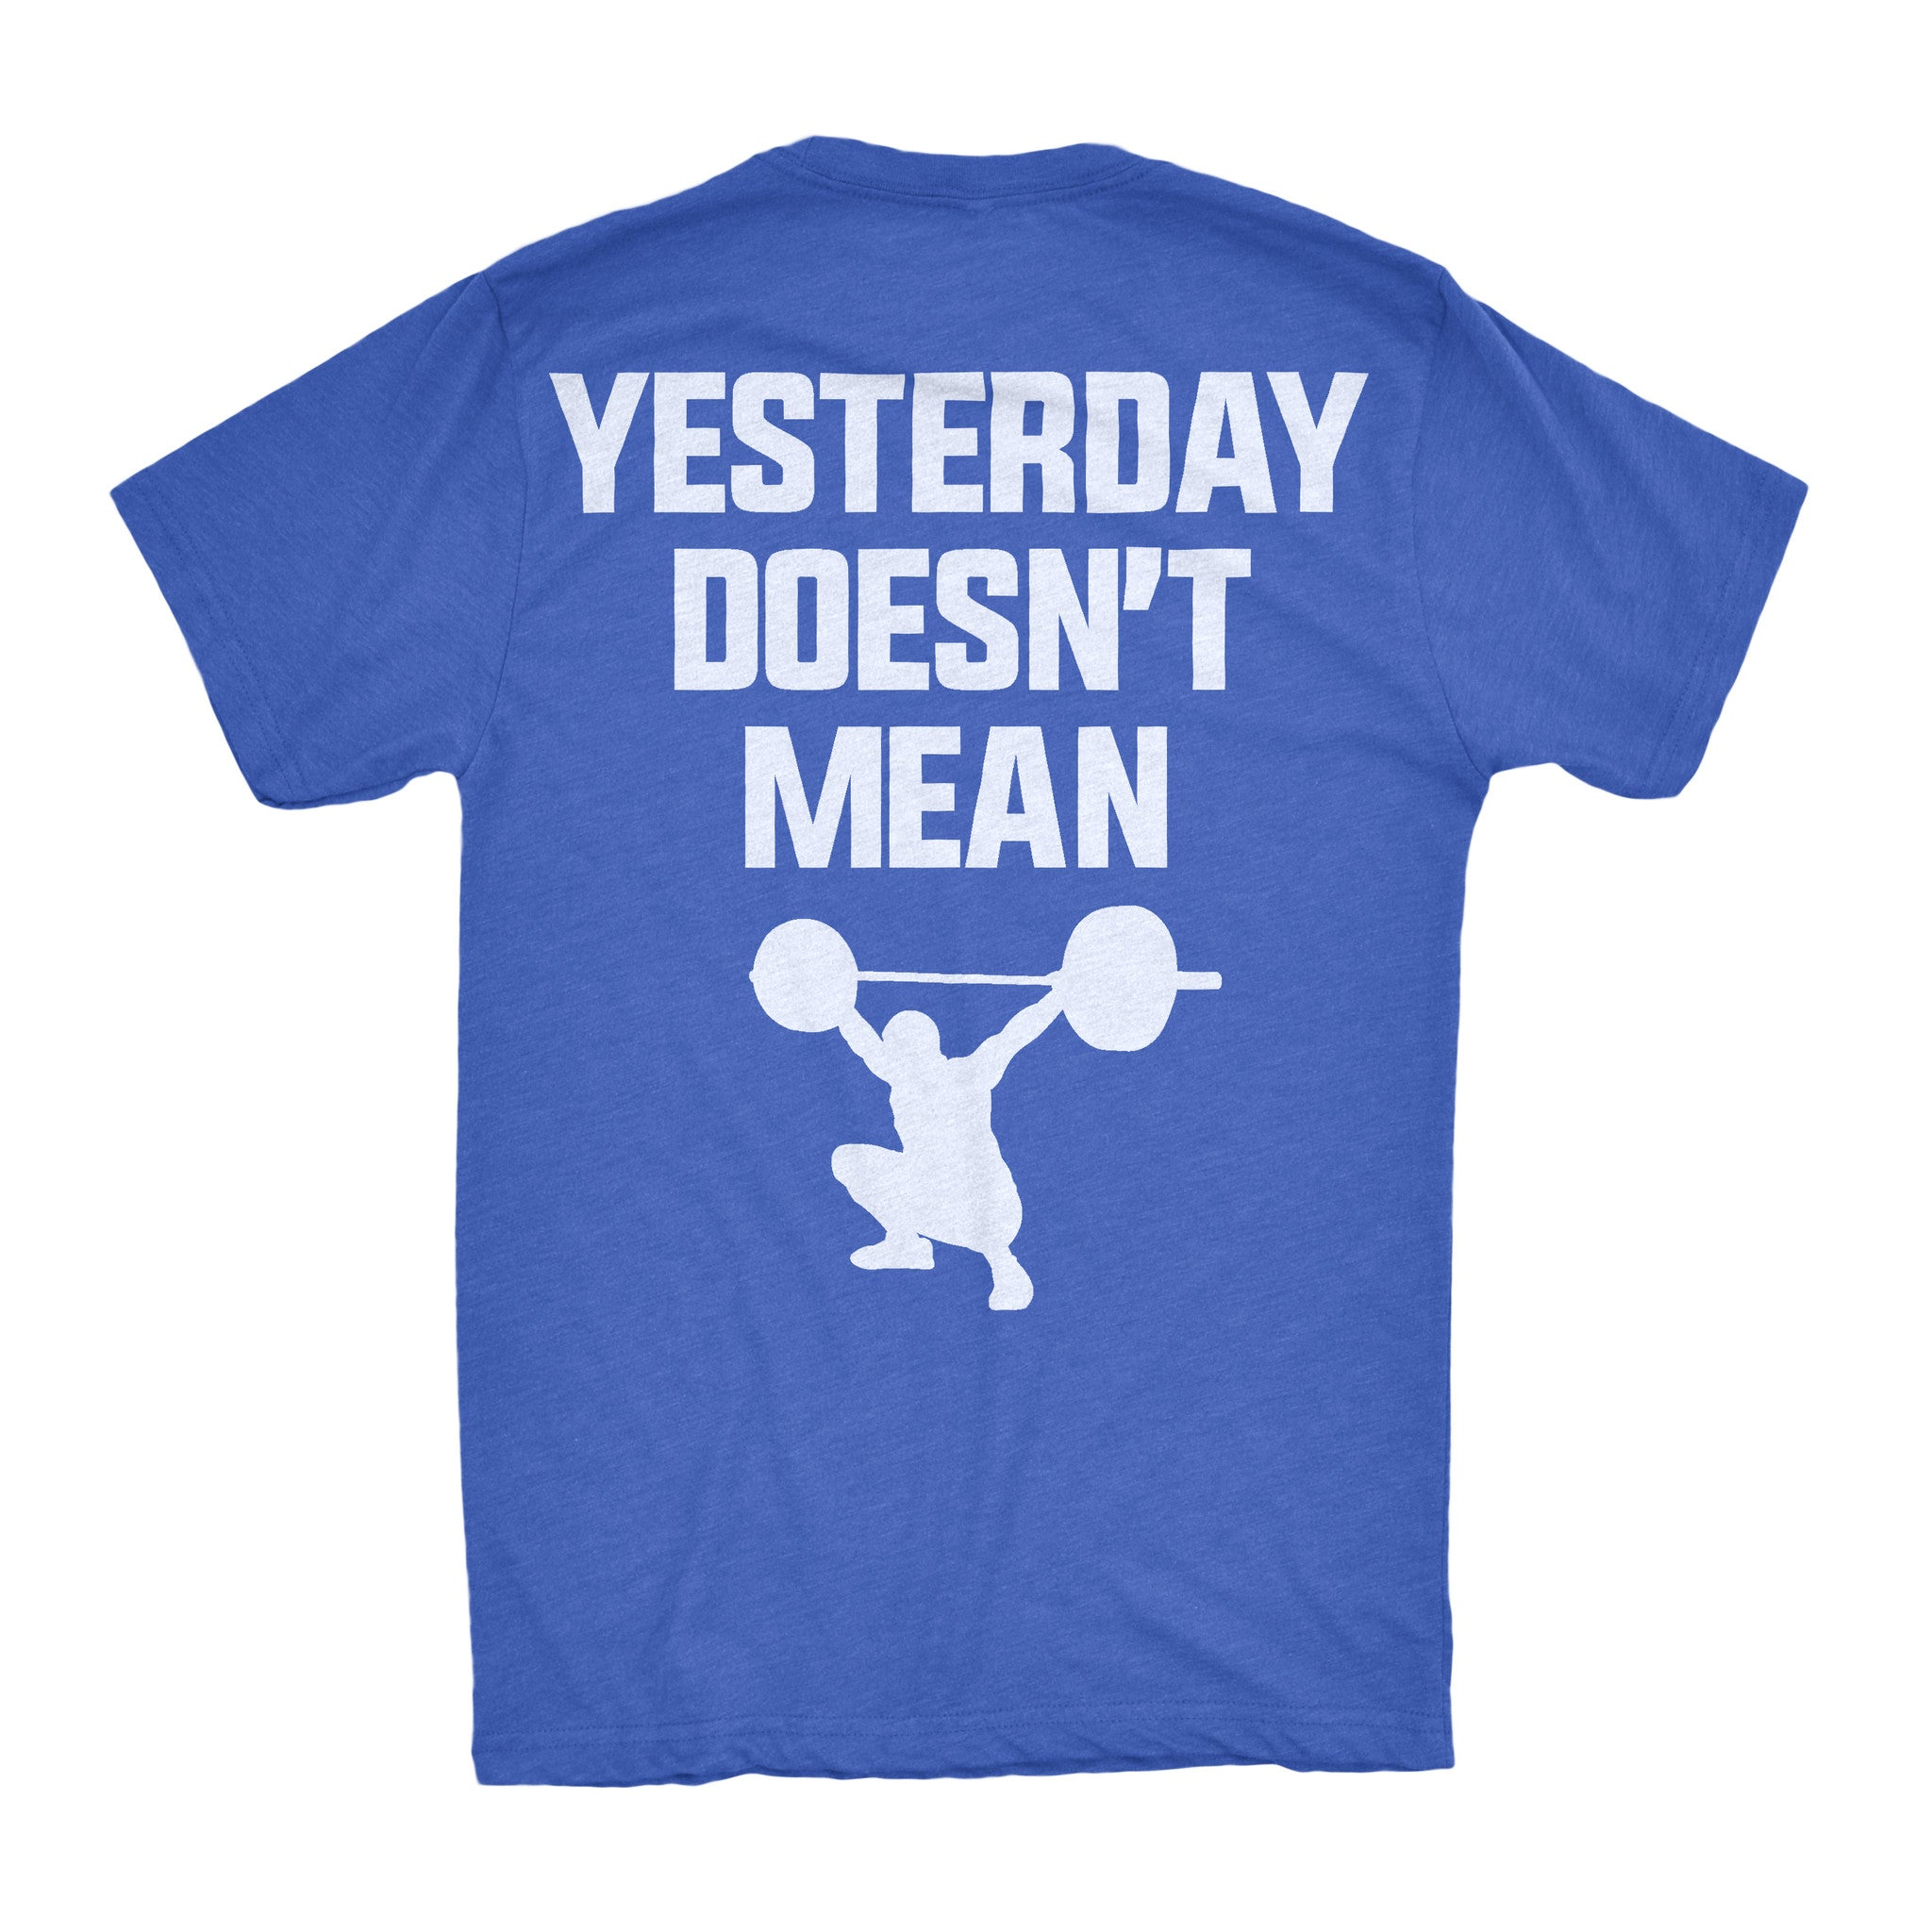 Yesterday Doesn't Mean Squat Tee